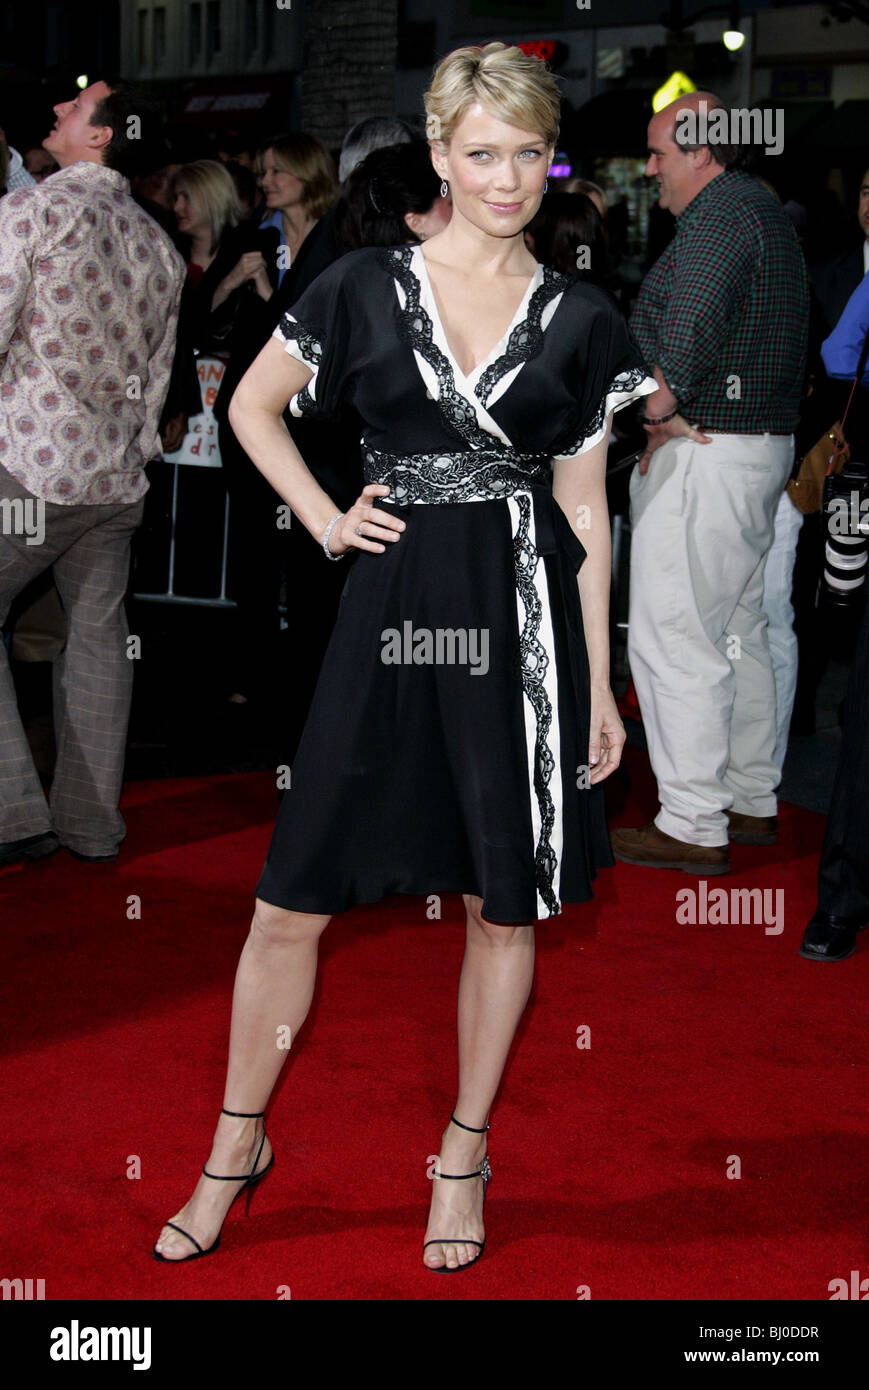 LAURIE HOLDEN ACTRESS HOLLYWOOD  LOS ANGELES  USA 20/04/2006 - Stock Image